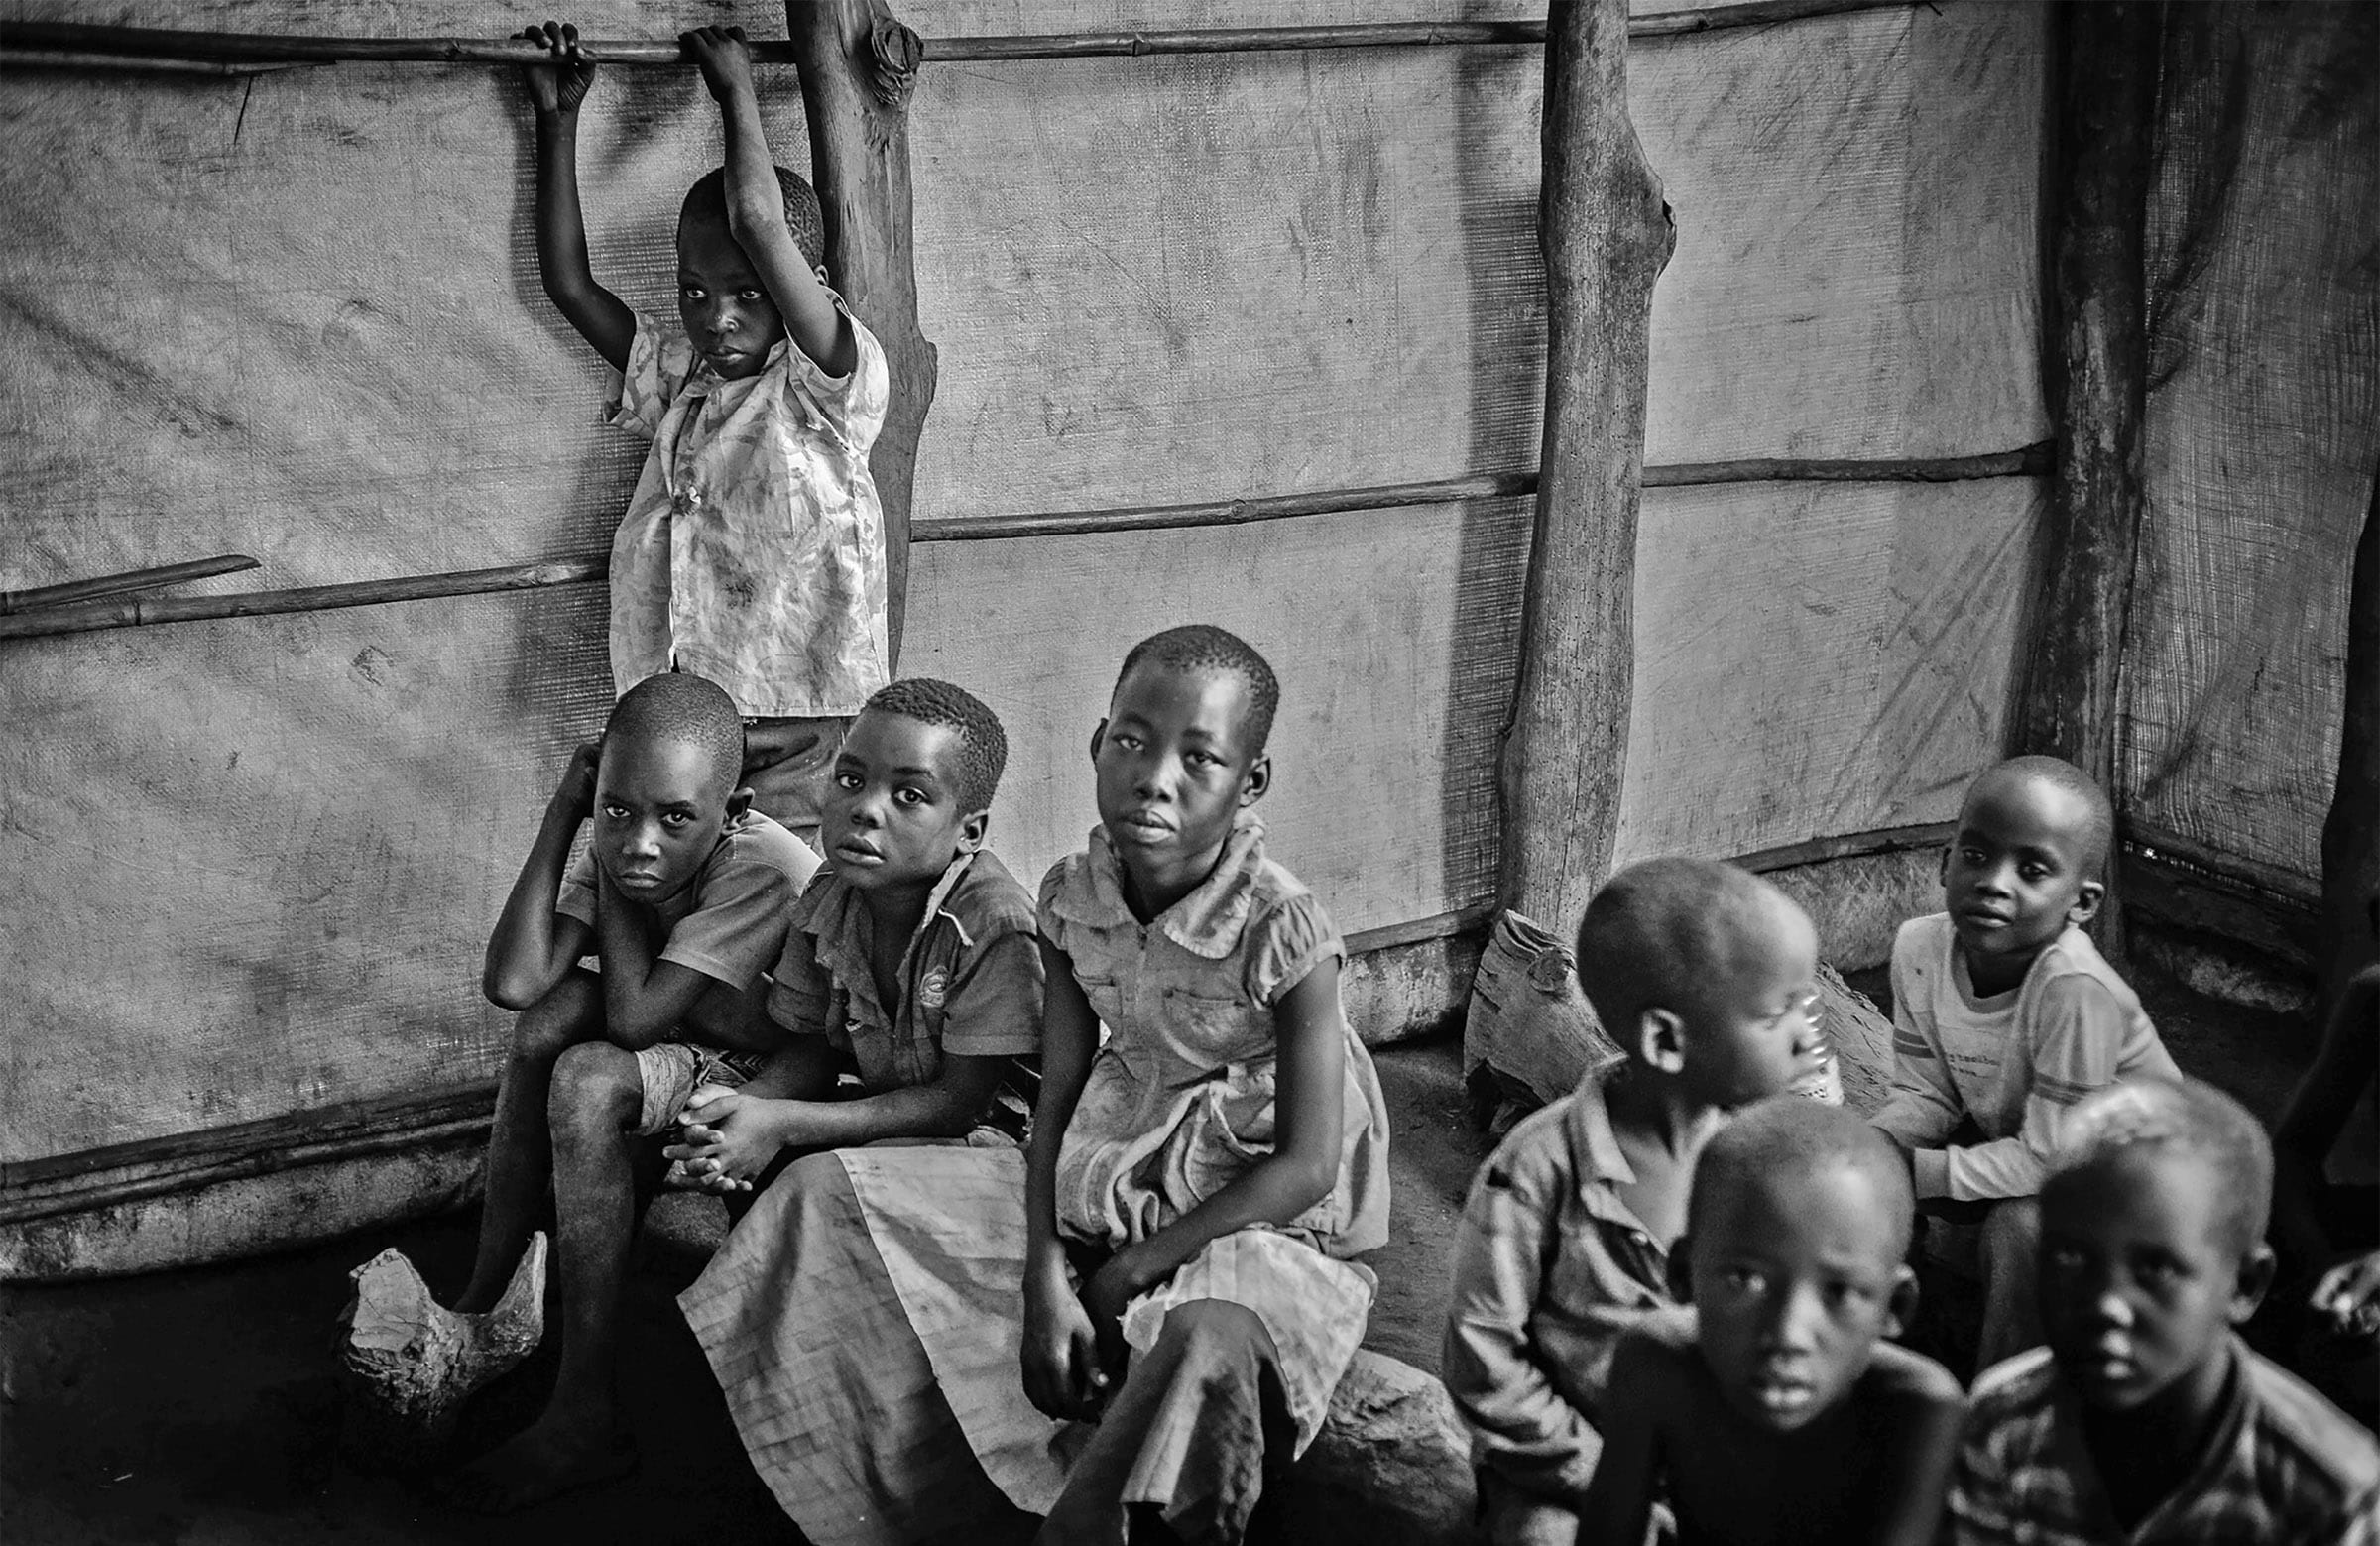 Children sitting inside a tent structure, sitting on pieces of wood